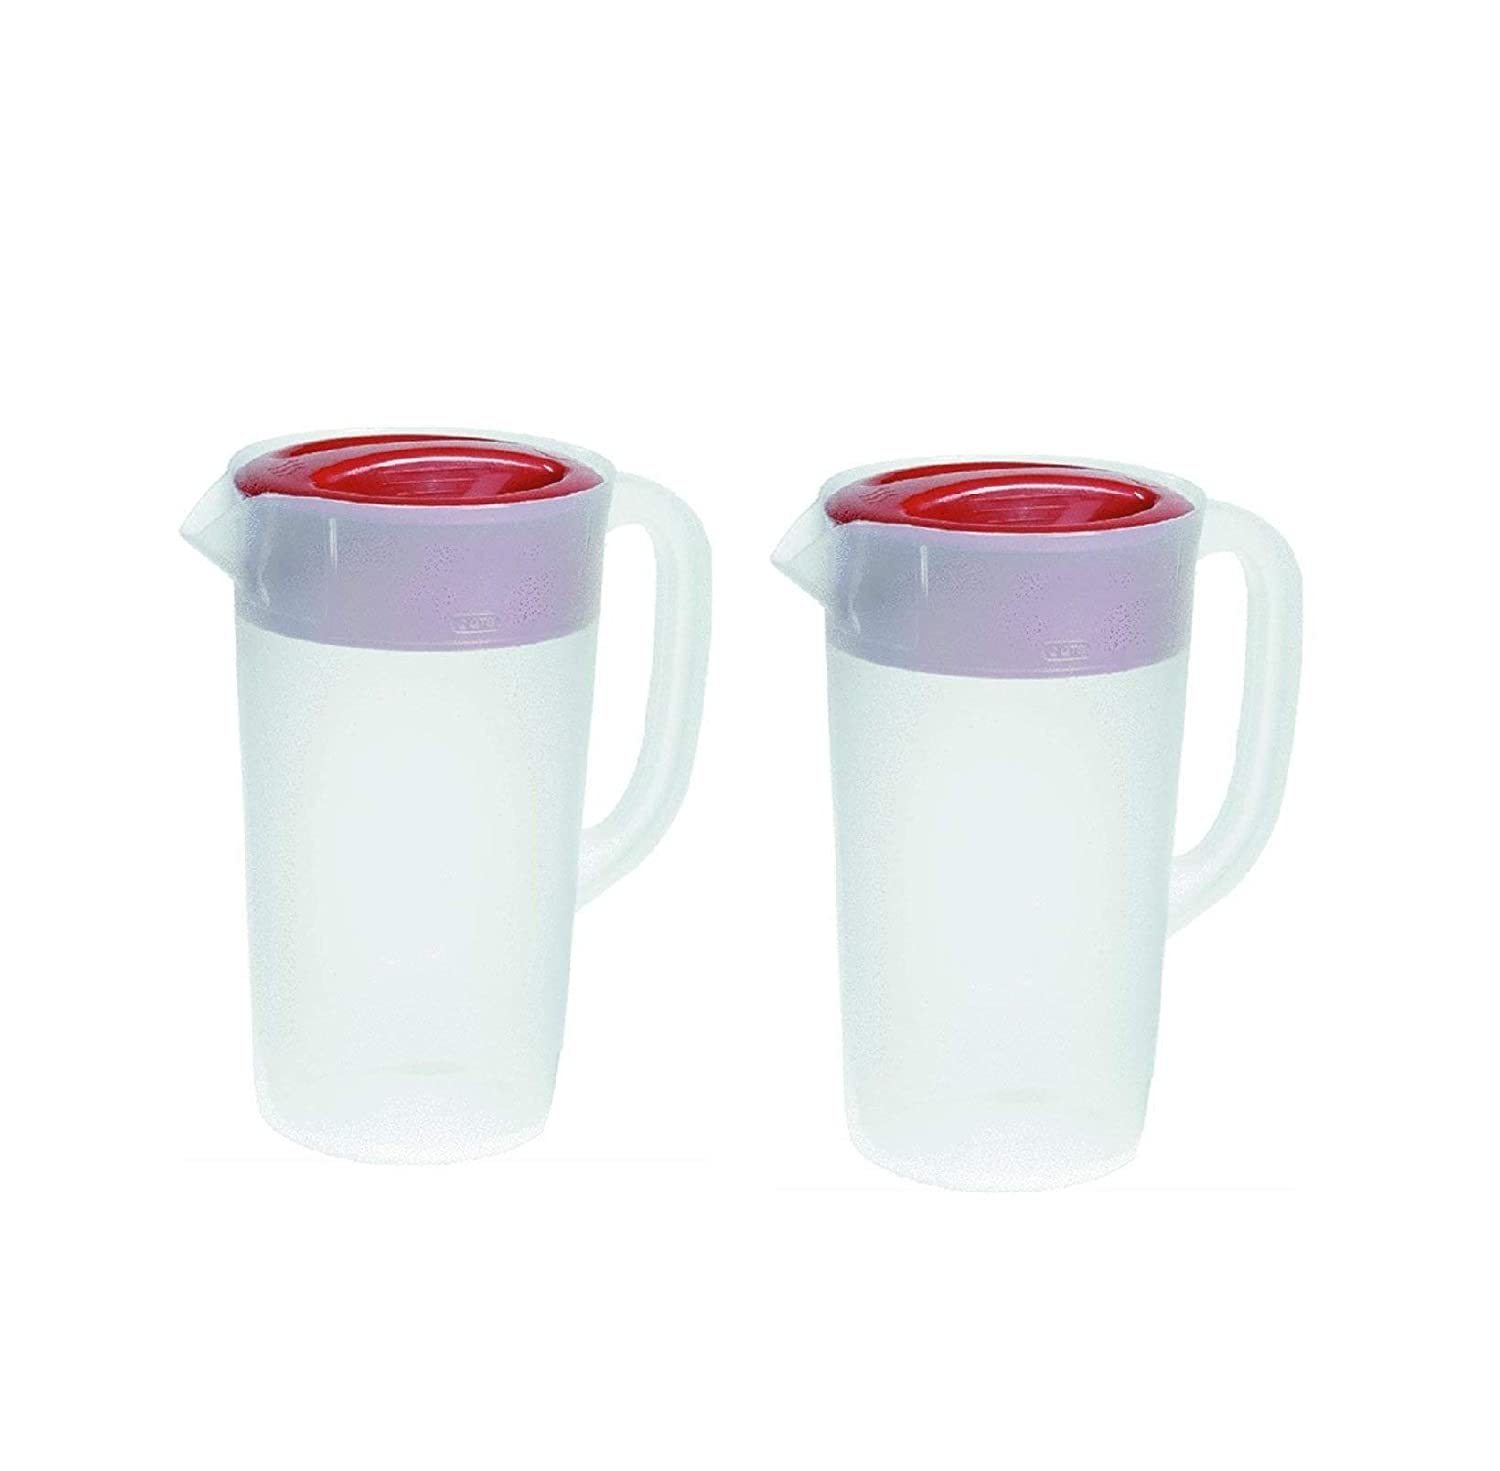 Rubbermaid 30621-4 798837755681 Pitcher 2.25 Qt-Clear with Red Cover Pack of 2, 2 Pack,